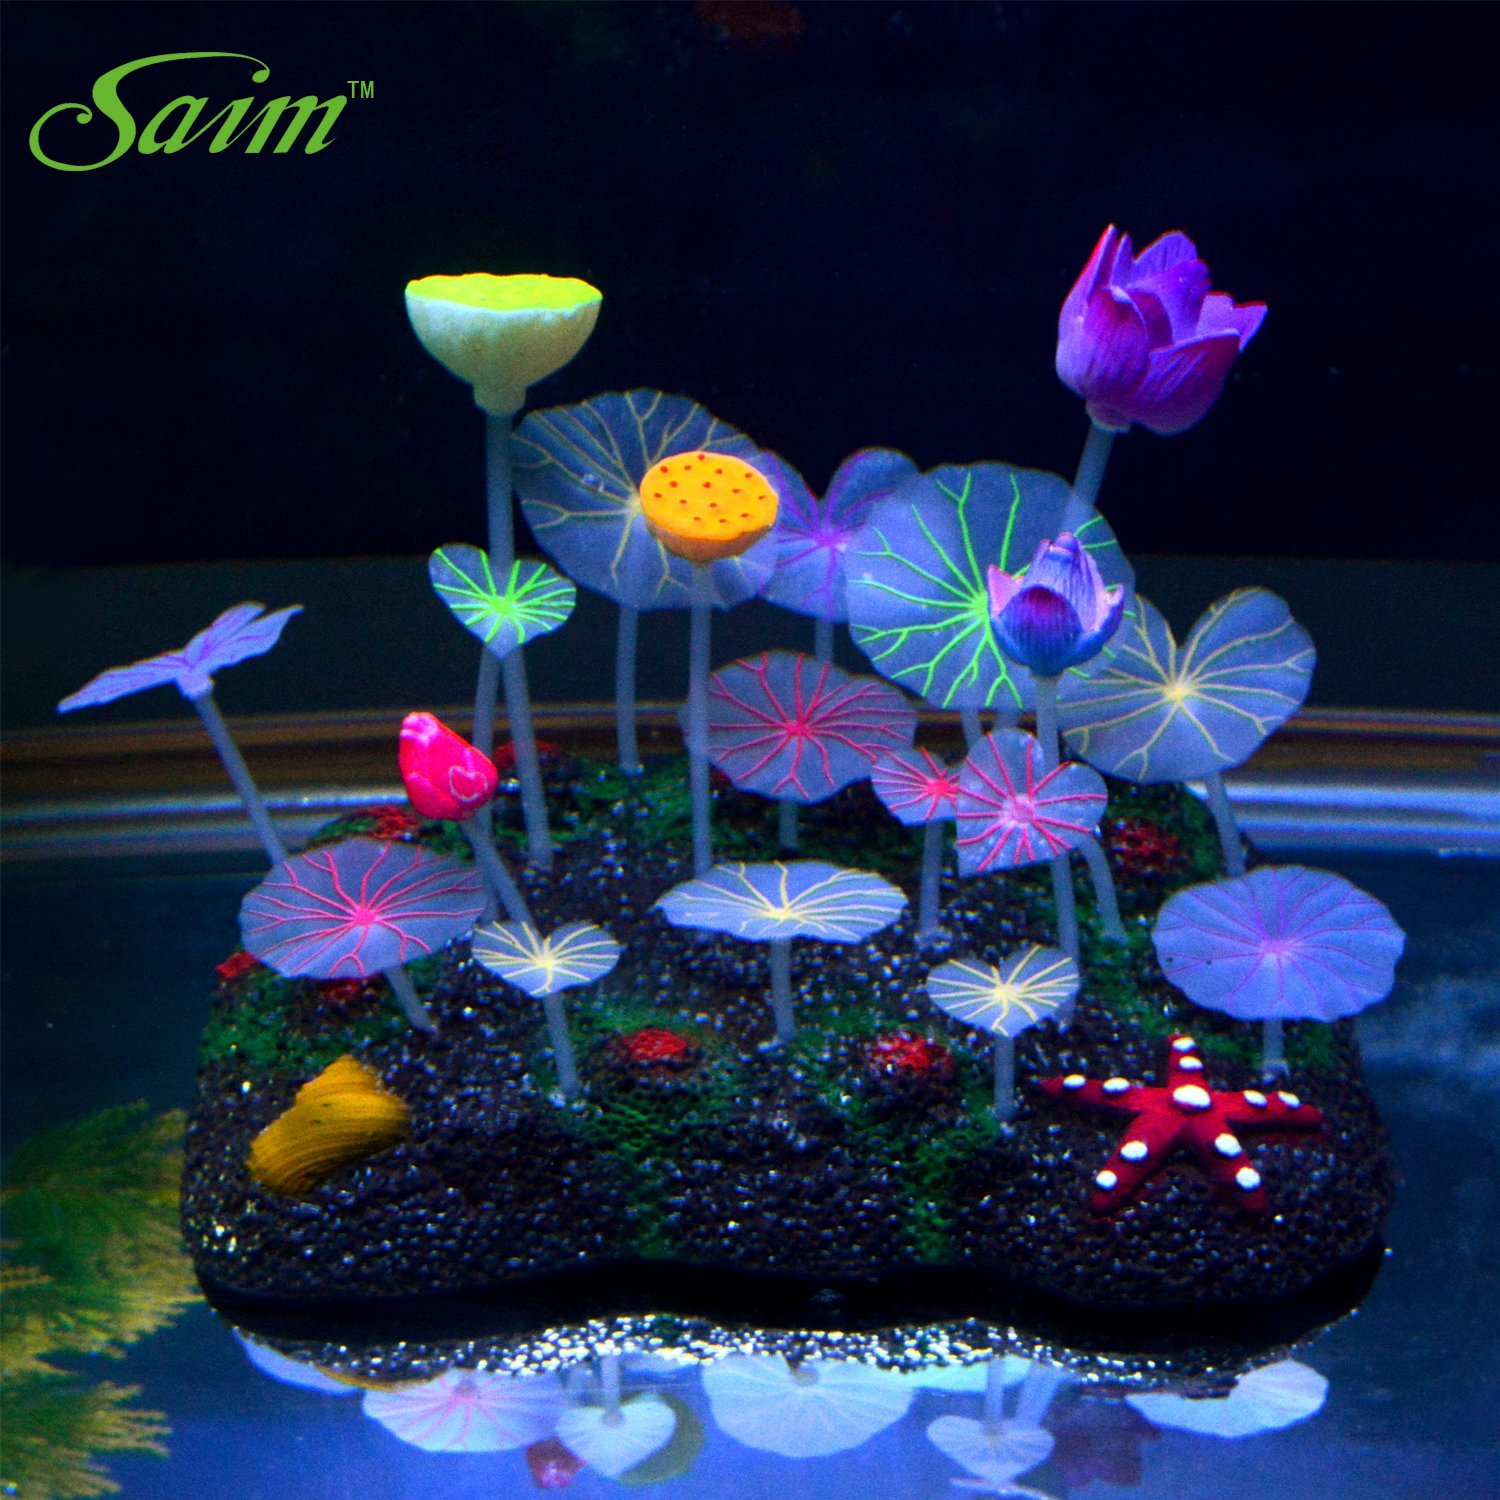 Glow in the dark aquarium decorations plants ornaments for Aquarium decoration ornaments